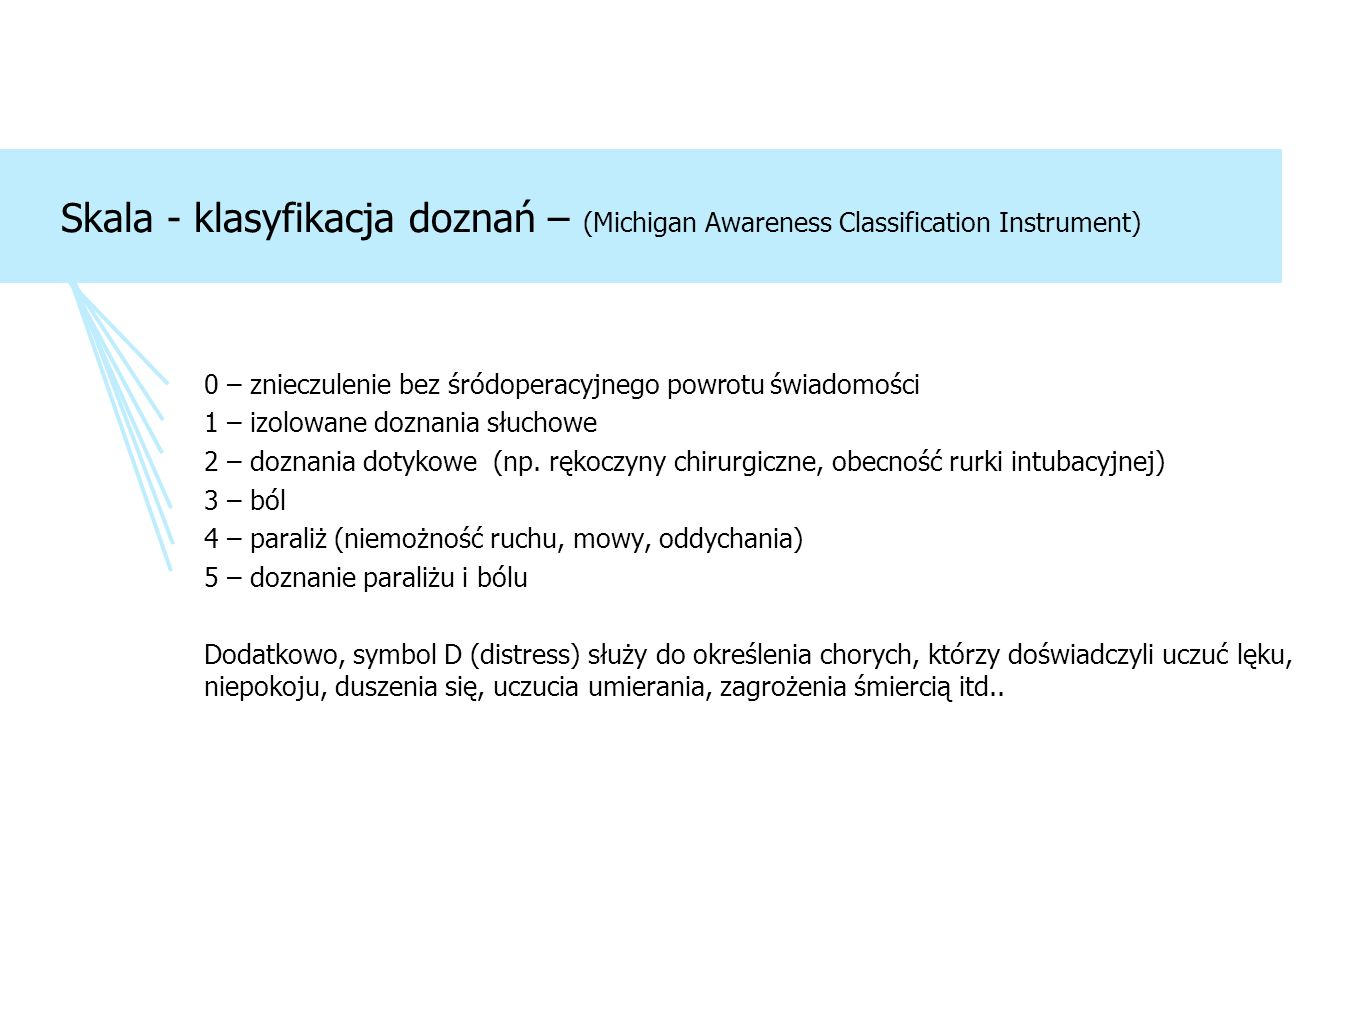 Skala - klasyfikacja doznań – (Michigan Awareness Classification Instrument)